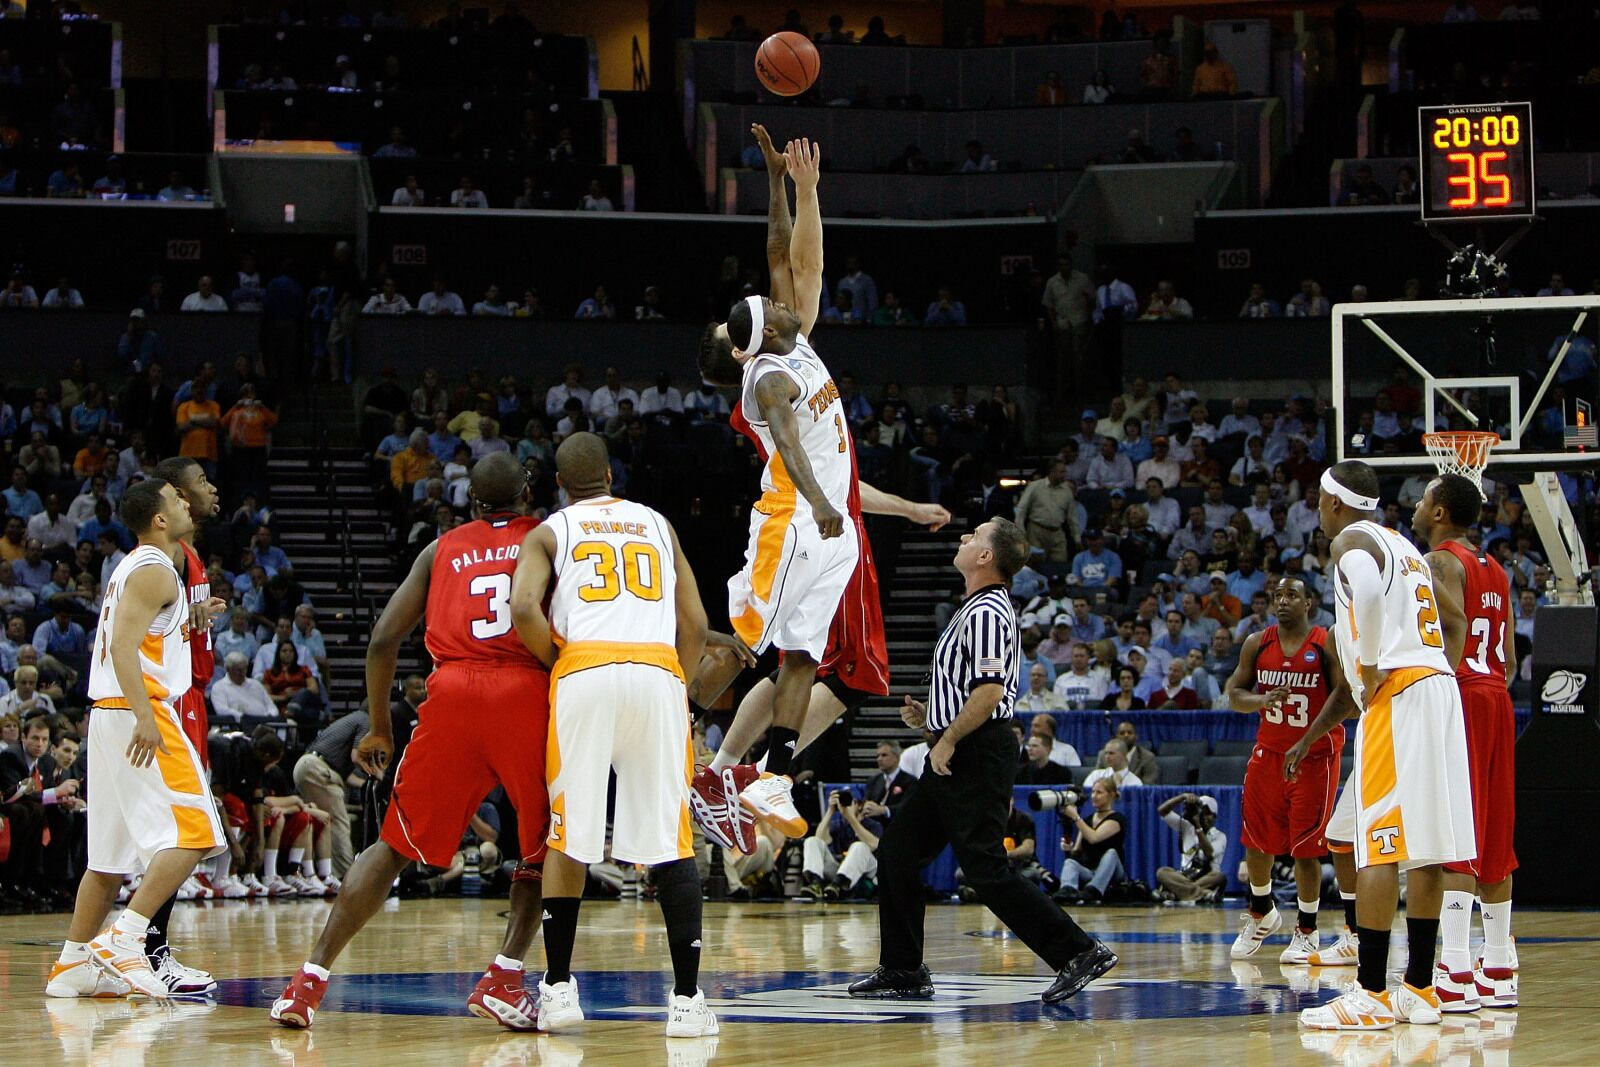 NCAA Tournament: Ranking all 5 games Tennessee Vols played as a 2-seed